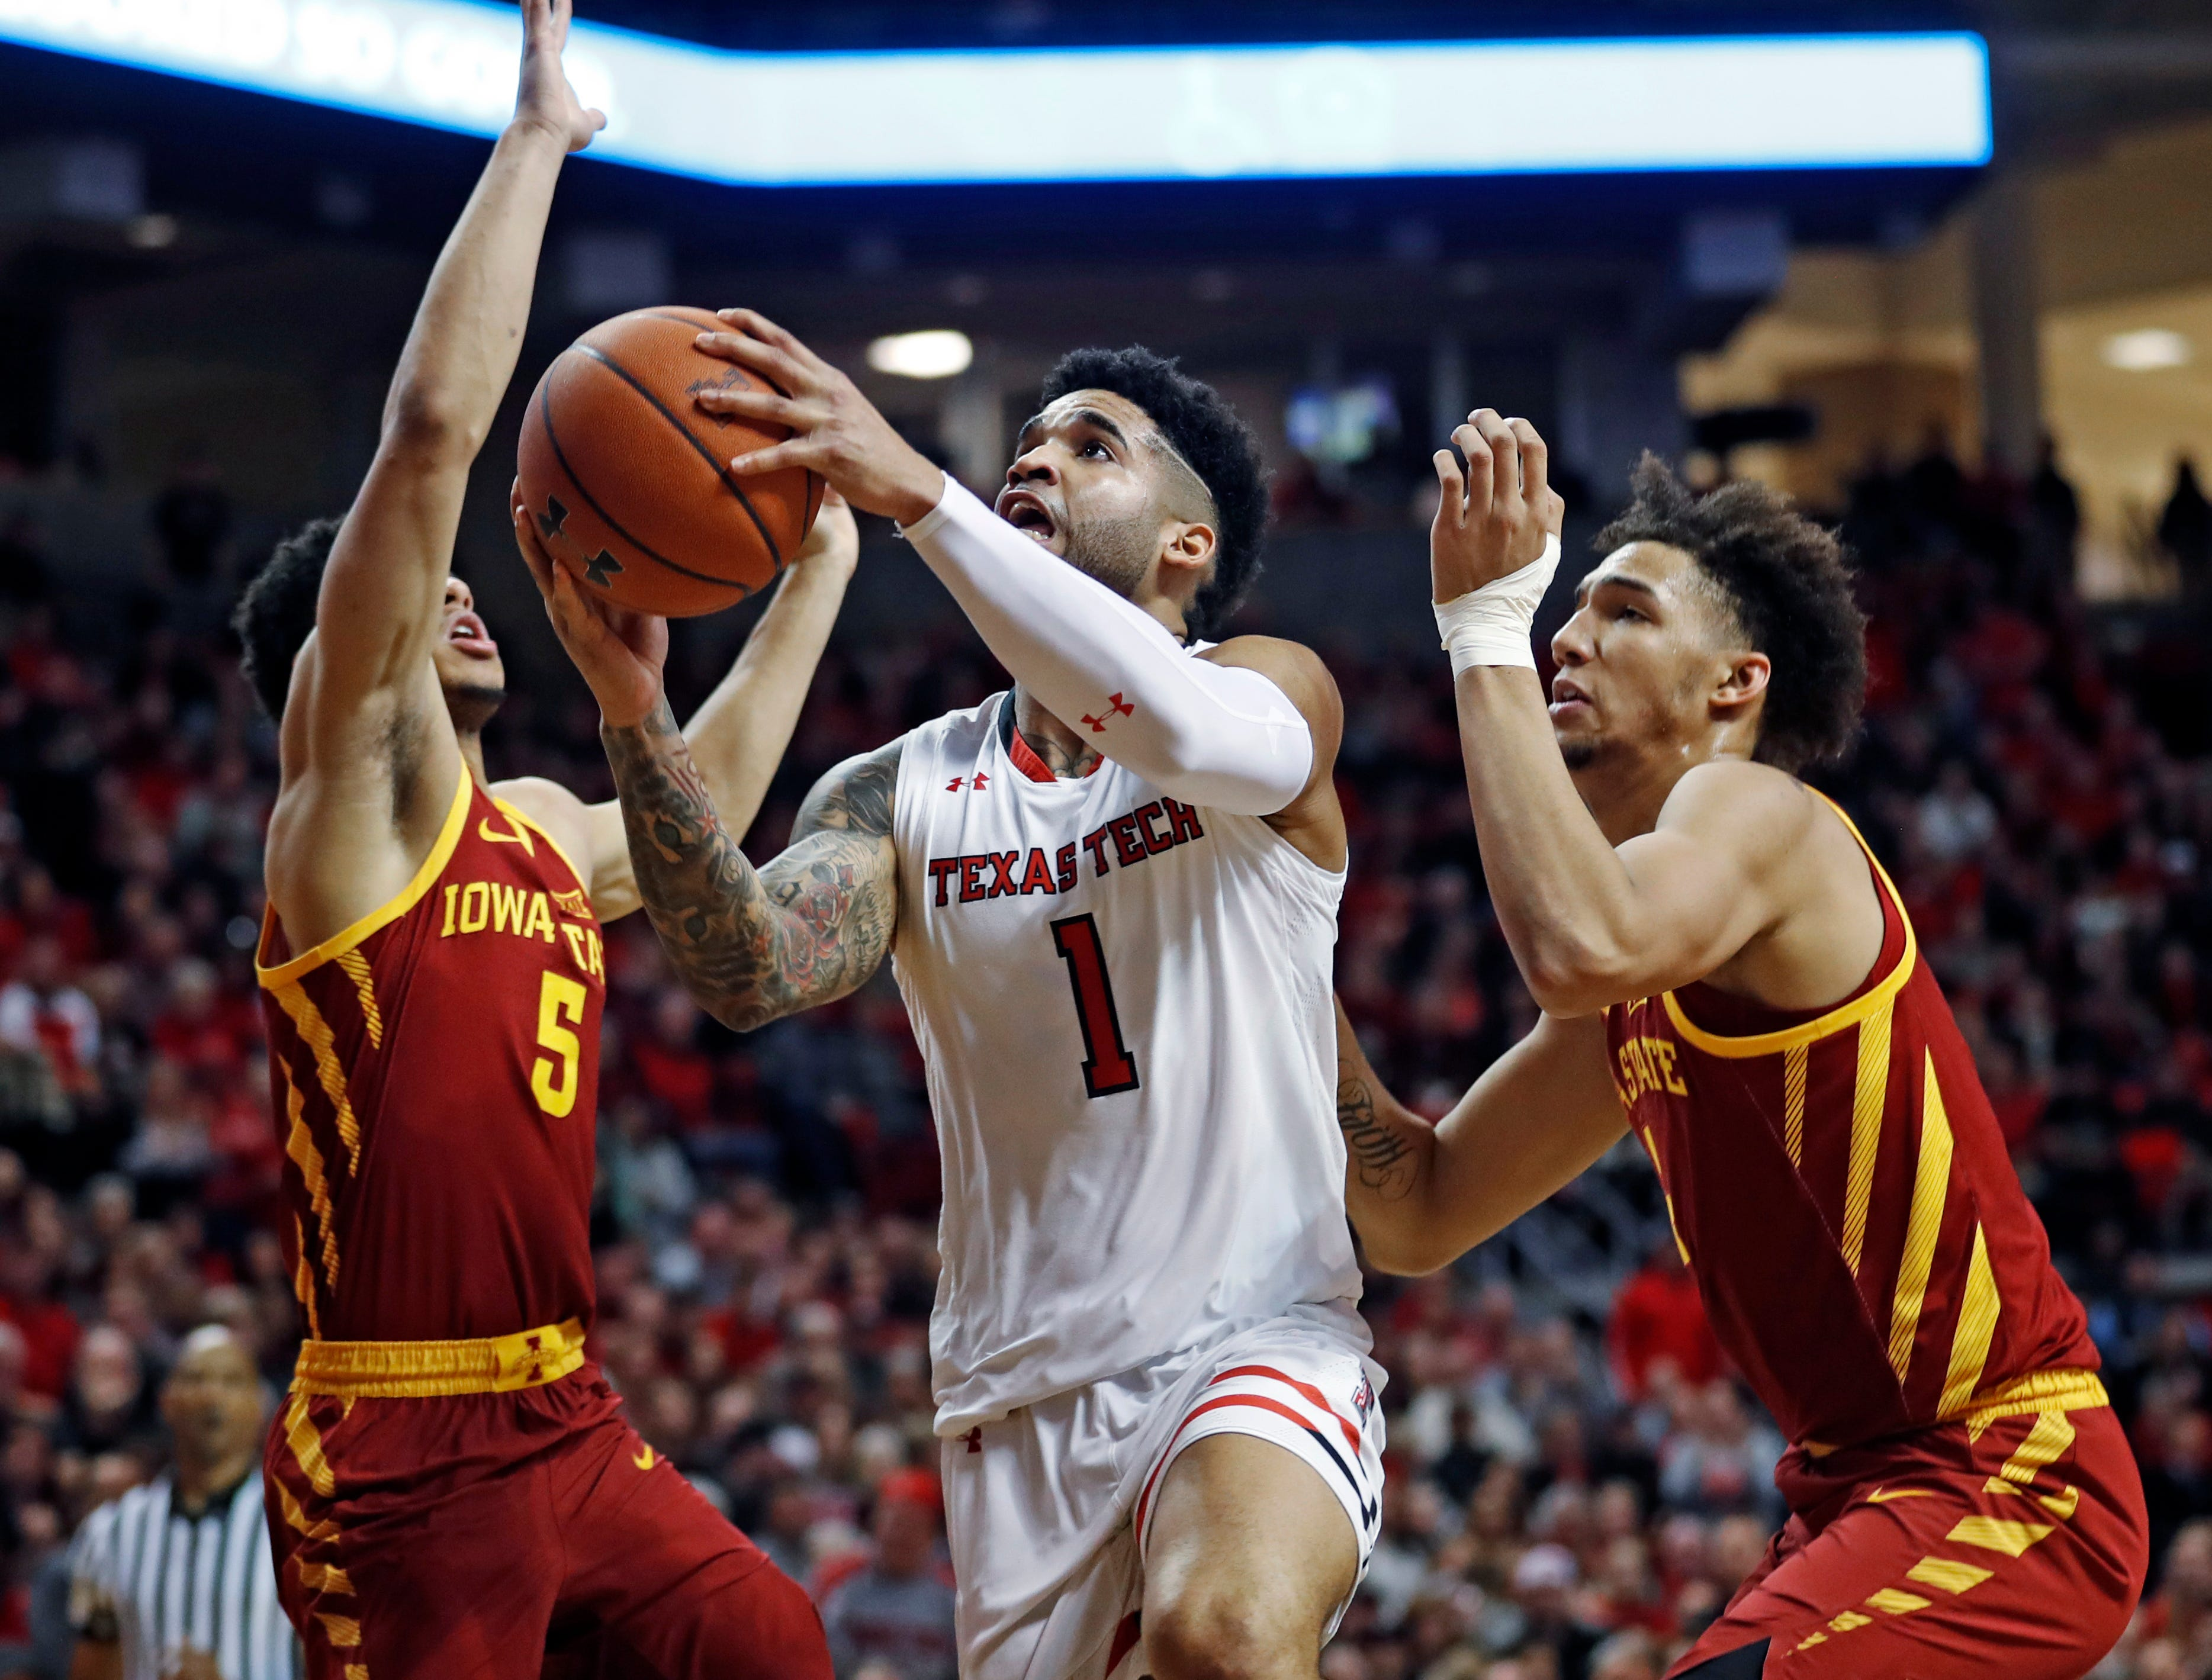 Texas Tech's Brandone Francis (1) goes to the basket between Iowa State's Lindell Wigginton (5) and George Conditt IV during the first half of an NCAA college basketball game Wednesday, Jan. 16, 2019, in Lubbock, Texas.